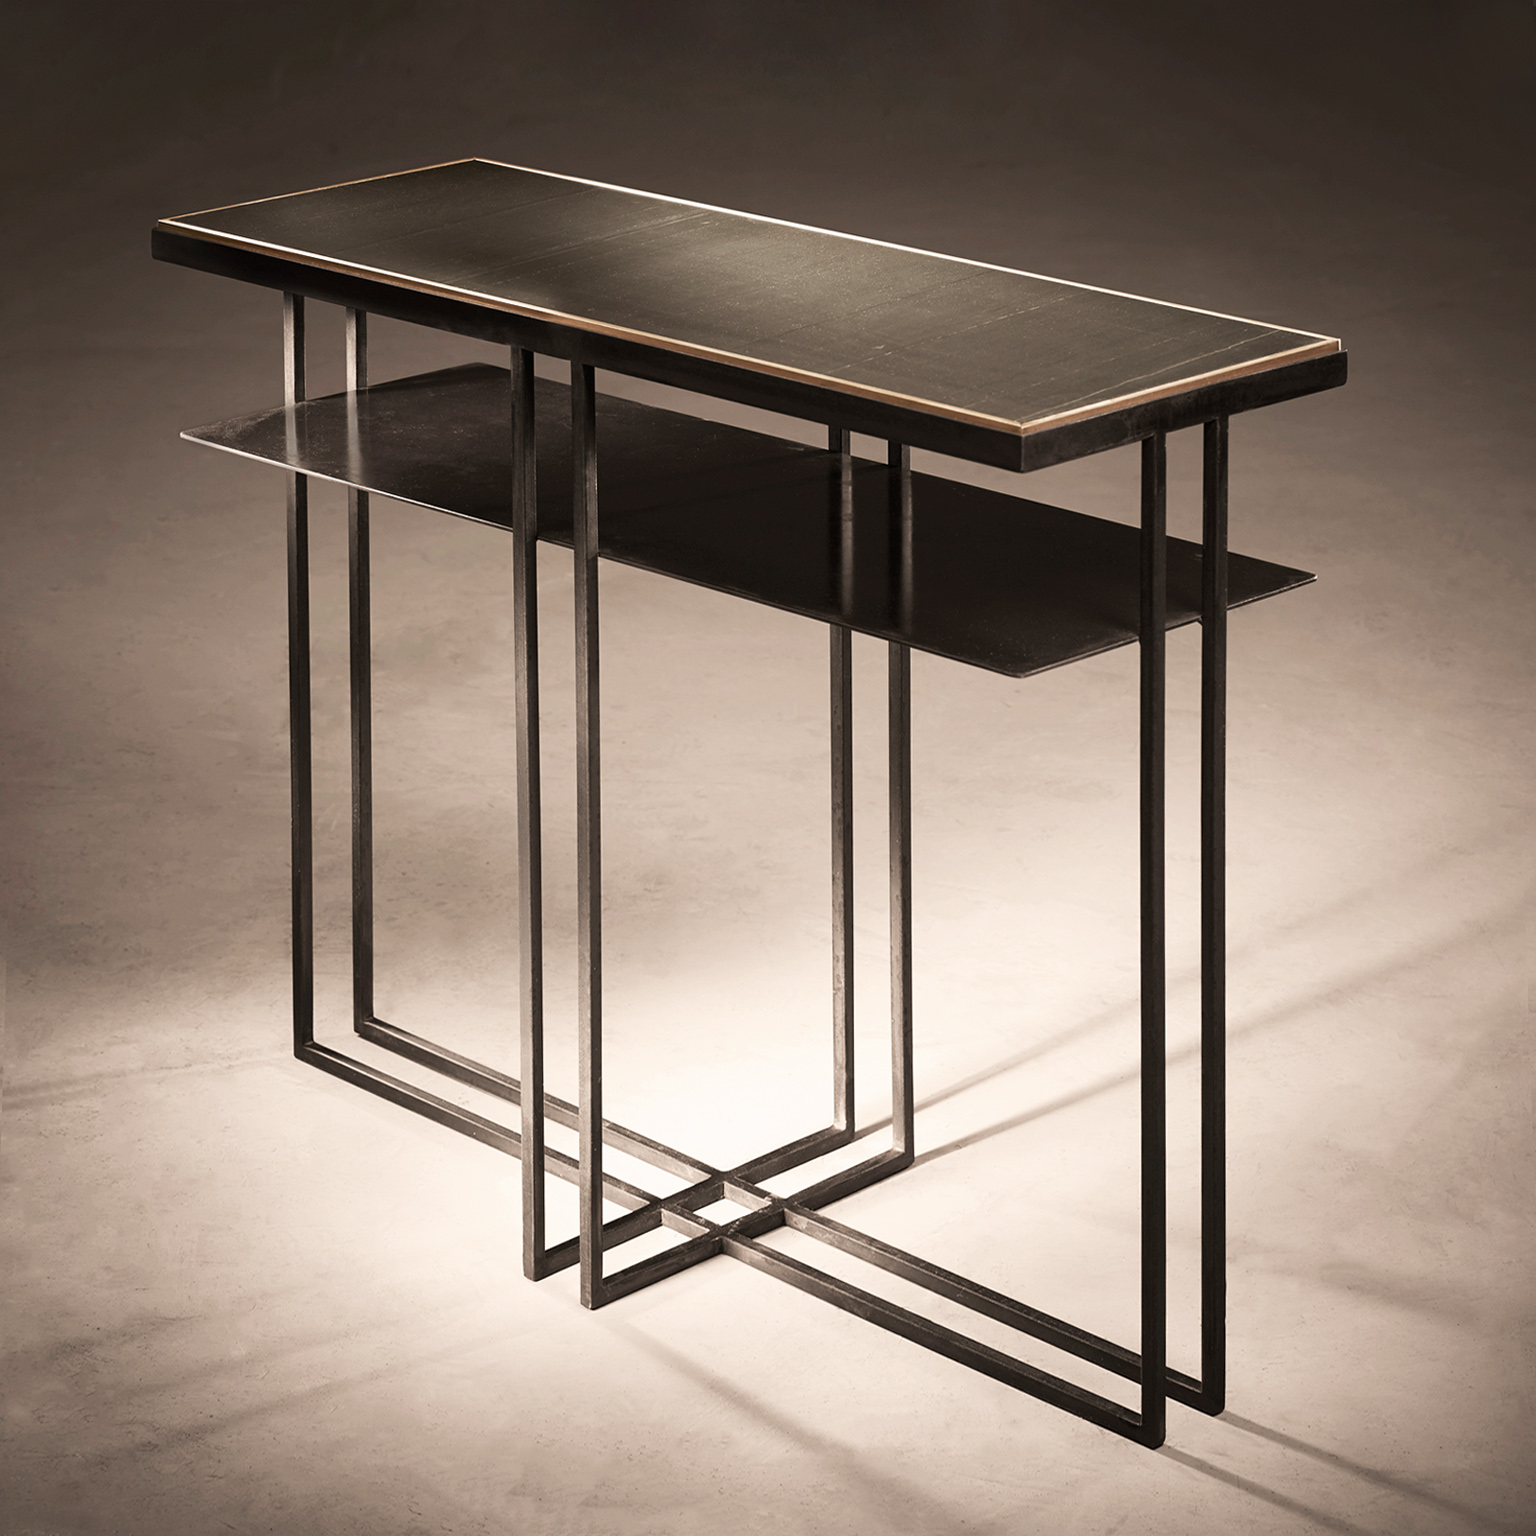 Slate Cross Binate Side Table - This sleek yet industrial side table is similar to the Brass Cross Binate Side Table except the top is made from slate. It has a Blackened Steel Frame, top with honed Cumbrian slate and a polished brass trim. The Slate Cross Binate Side Table is hand made and crafted in the North of England to order. Custom sizes and finishes are available.</p>  | Matter of Stuff